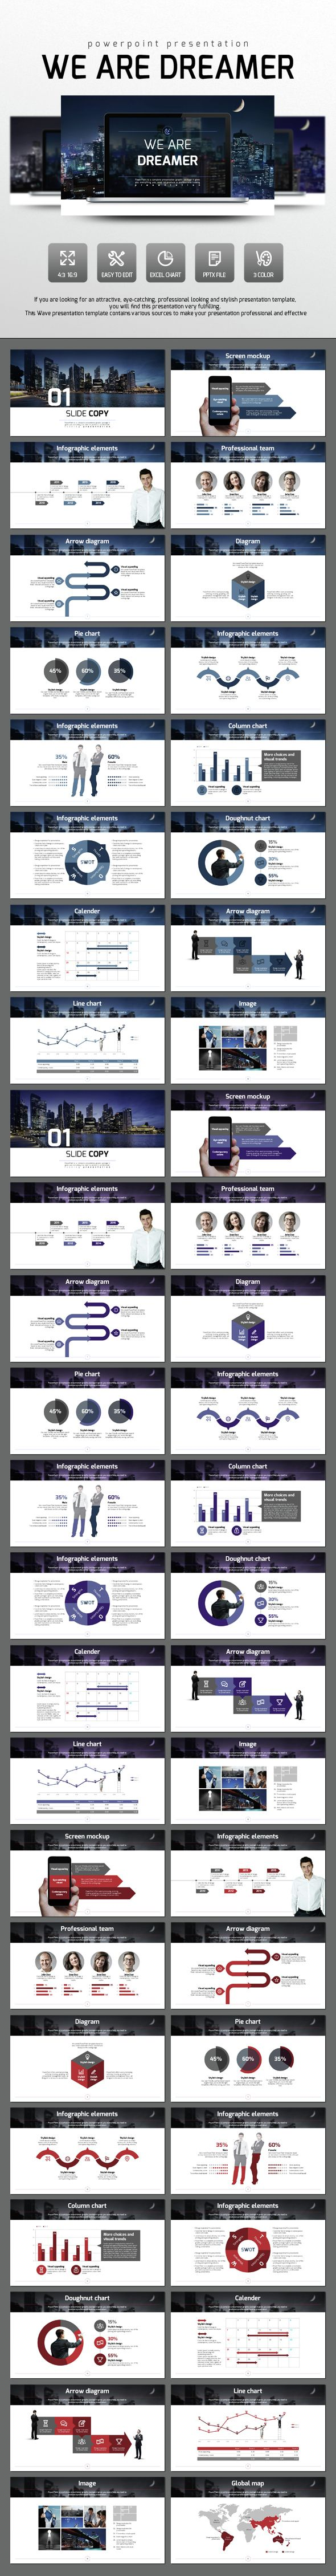 We are dreamer powerpoint presentation templates presentation layout design we are dreamer powerpoint presentation template slides download alramifo Gallery